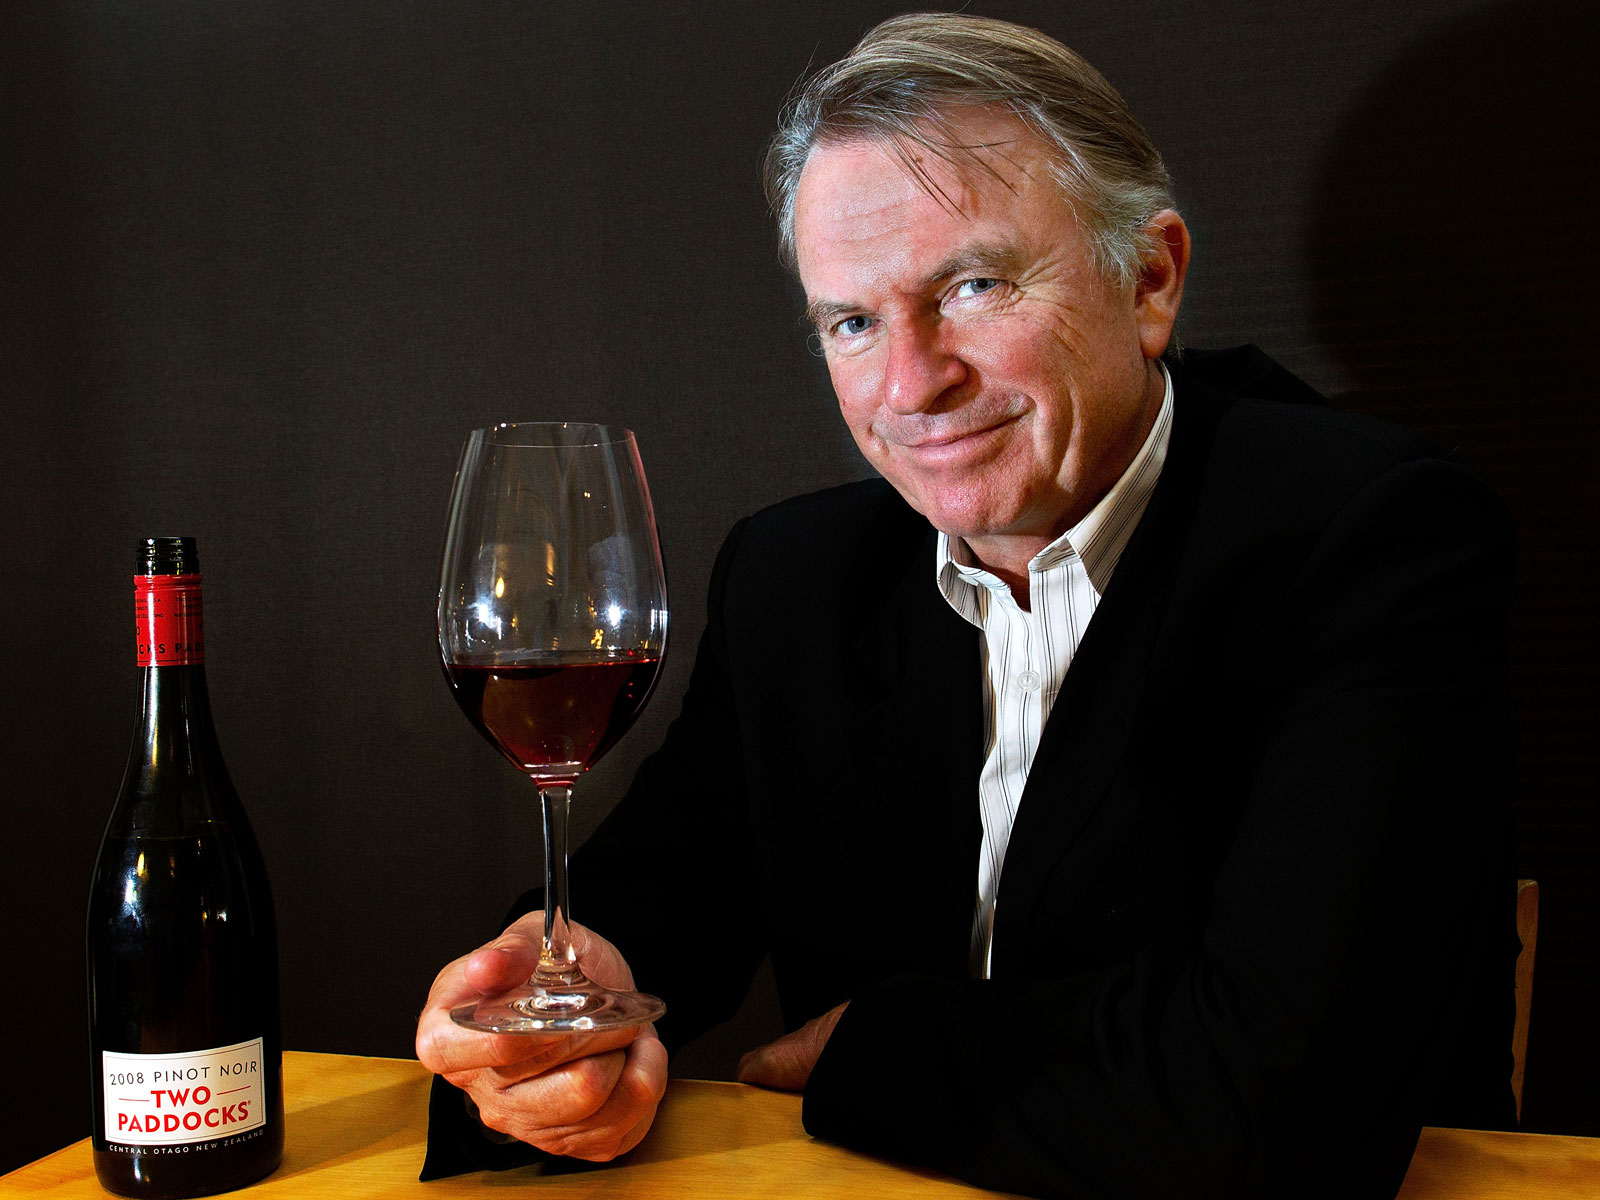 sam-neill-wine-FT-BLOG0418.jpg